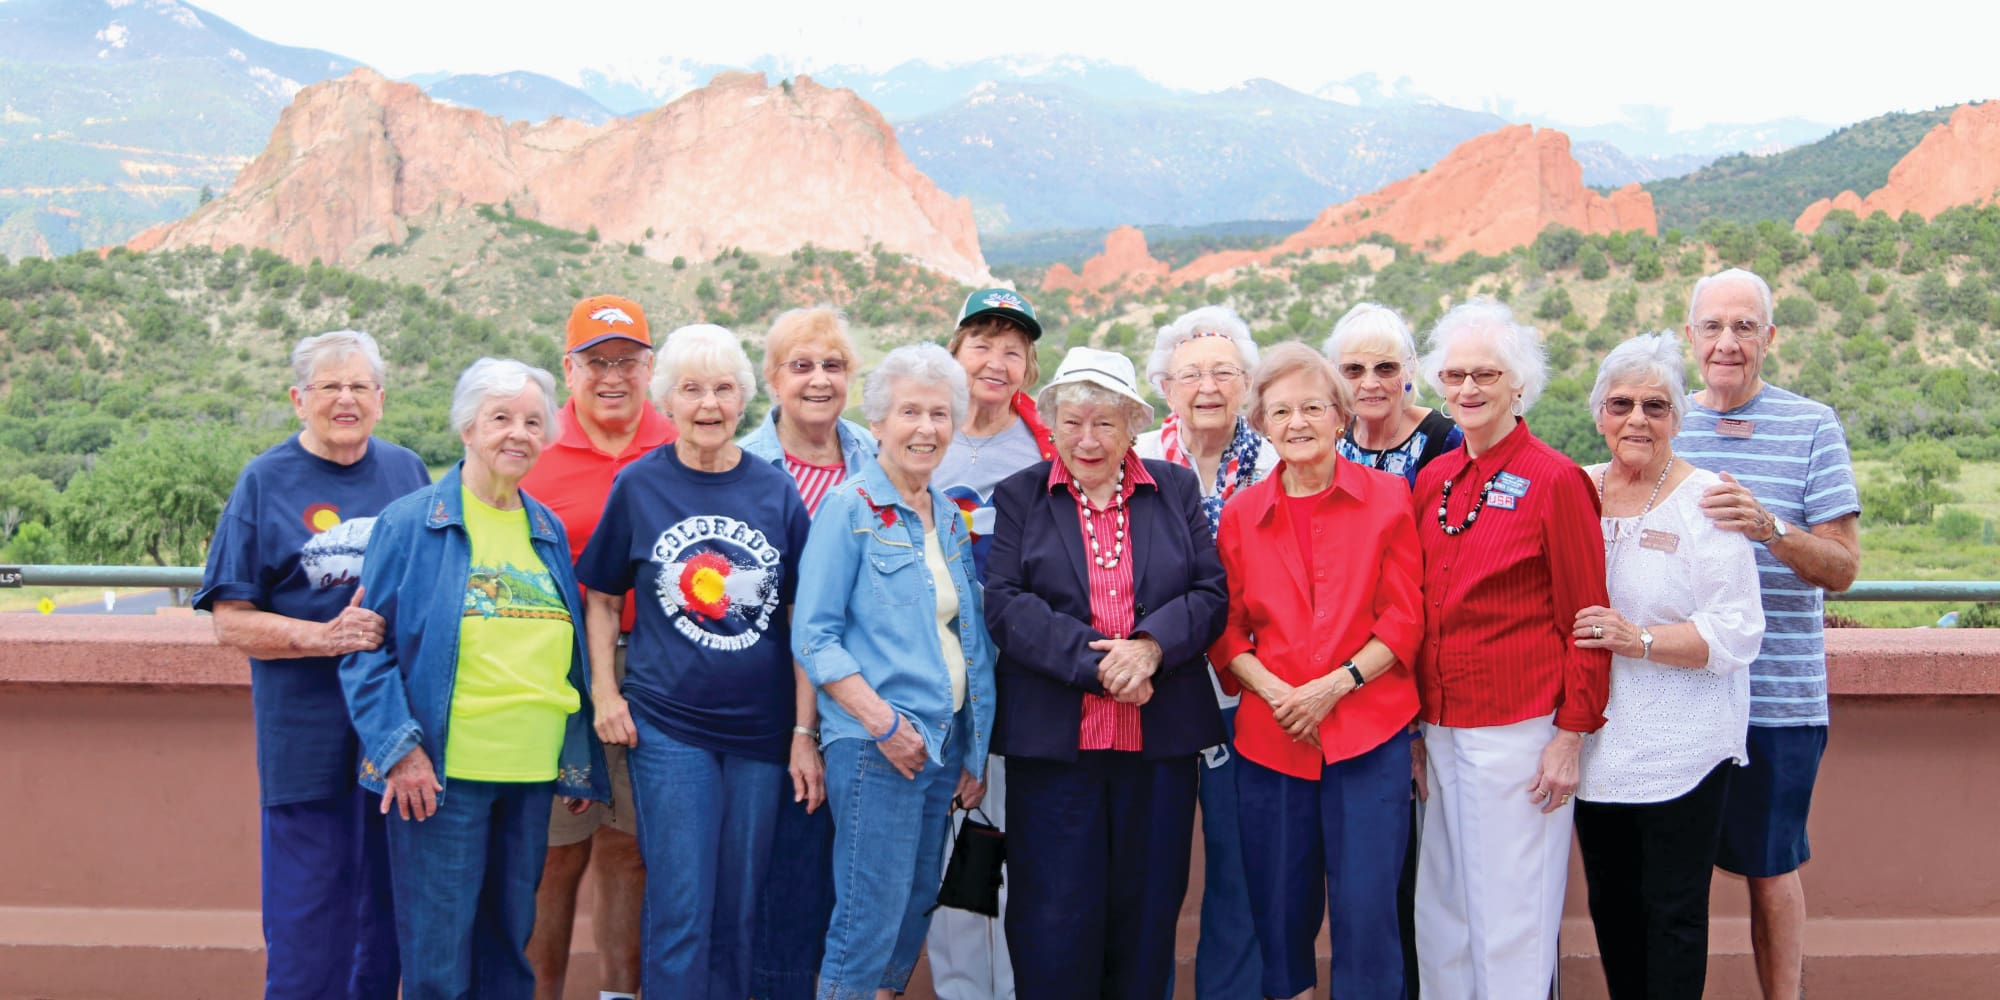 Residents from Summit Glen in Colorado Springs, Colorado in front of a beautiful landscape